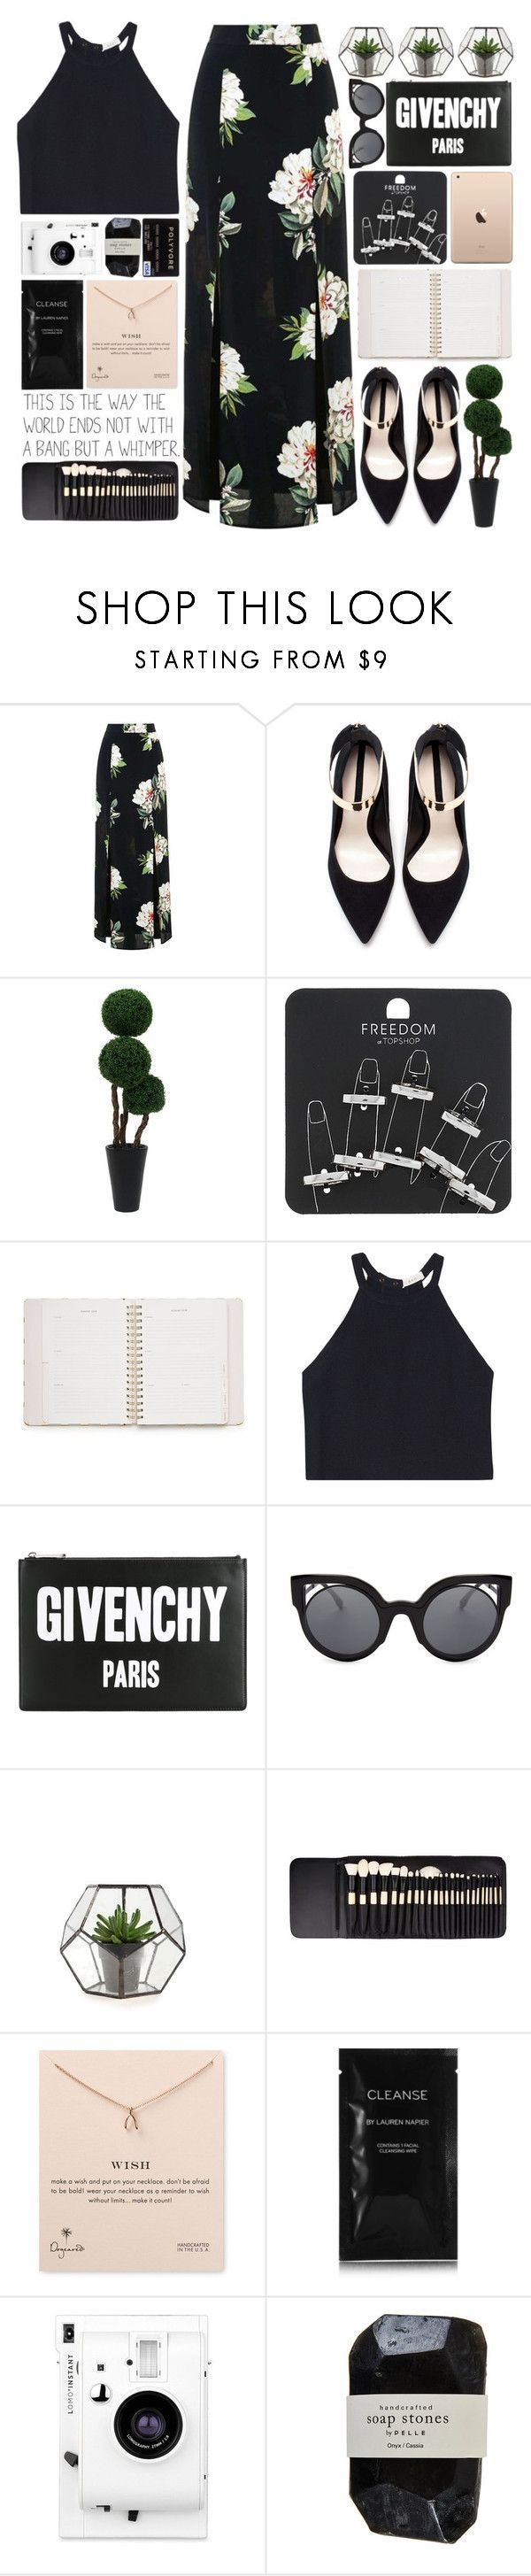 """Bad Liar"" by puppies241 ❤ liked on Polyvore featuring Topshop, Zara, Kate Spade, A.L.C., Givenchy, Fendi, Dogeared, Cleanse by Lauren Napier, Lomography and Cassia"